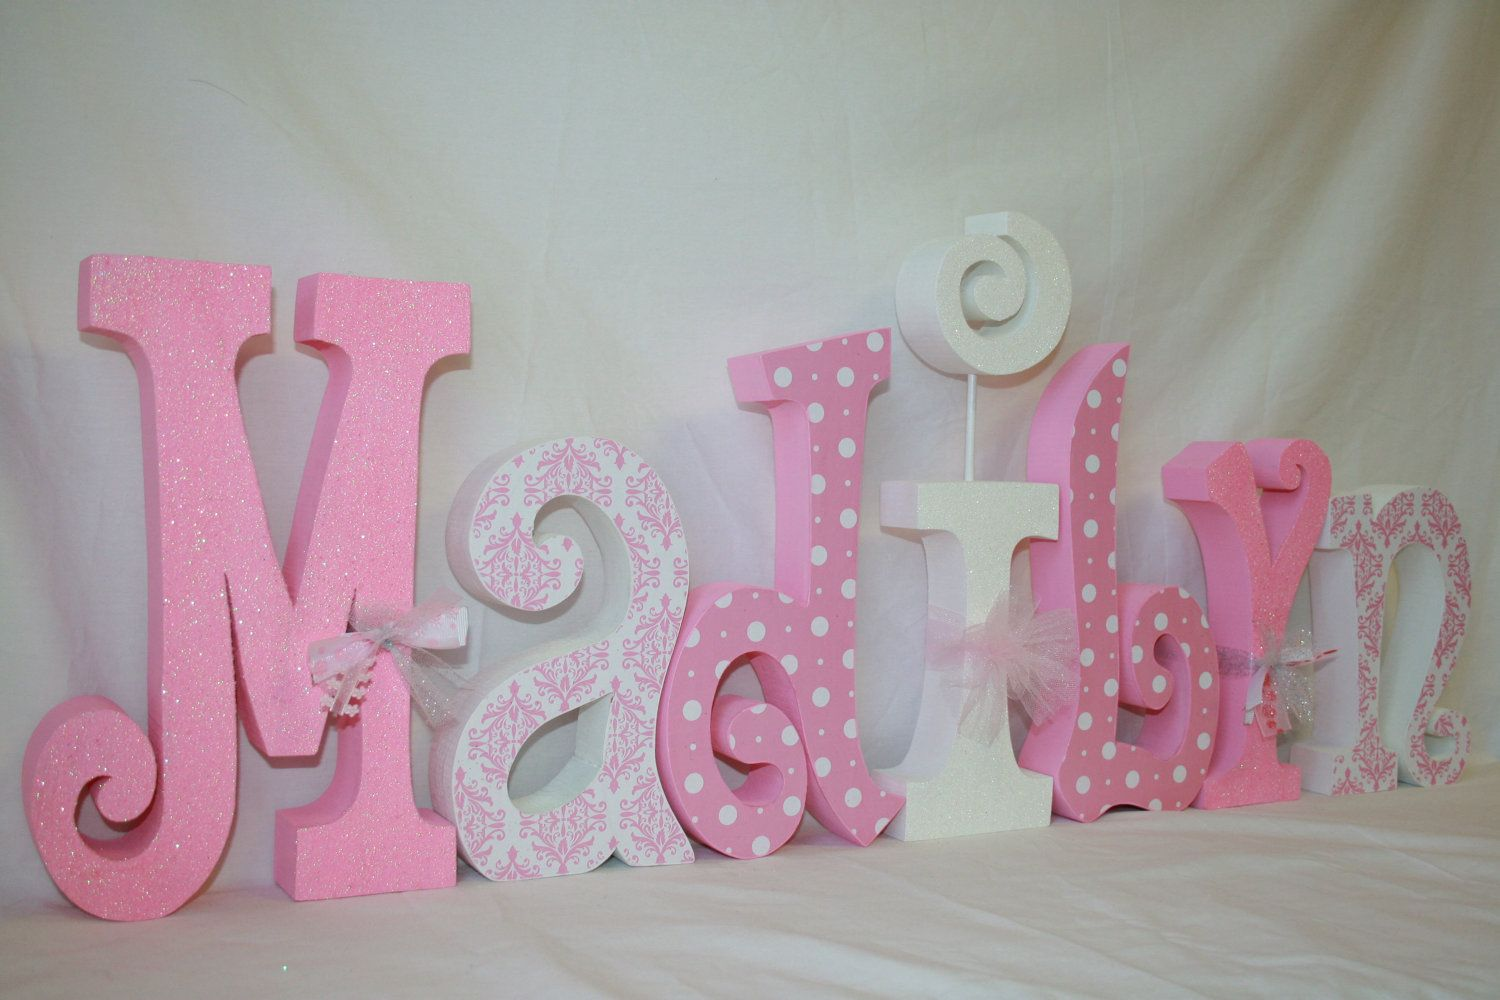 girl decor, pink and white, white polka dots, 7 letter set, girls